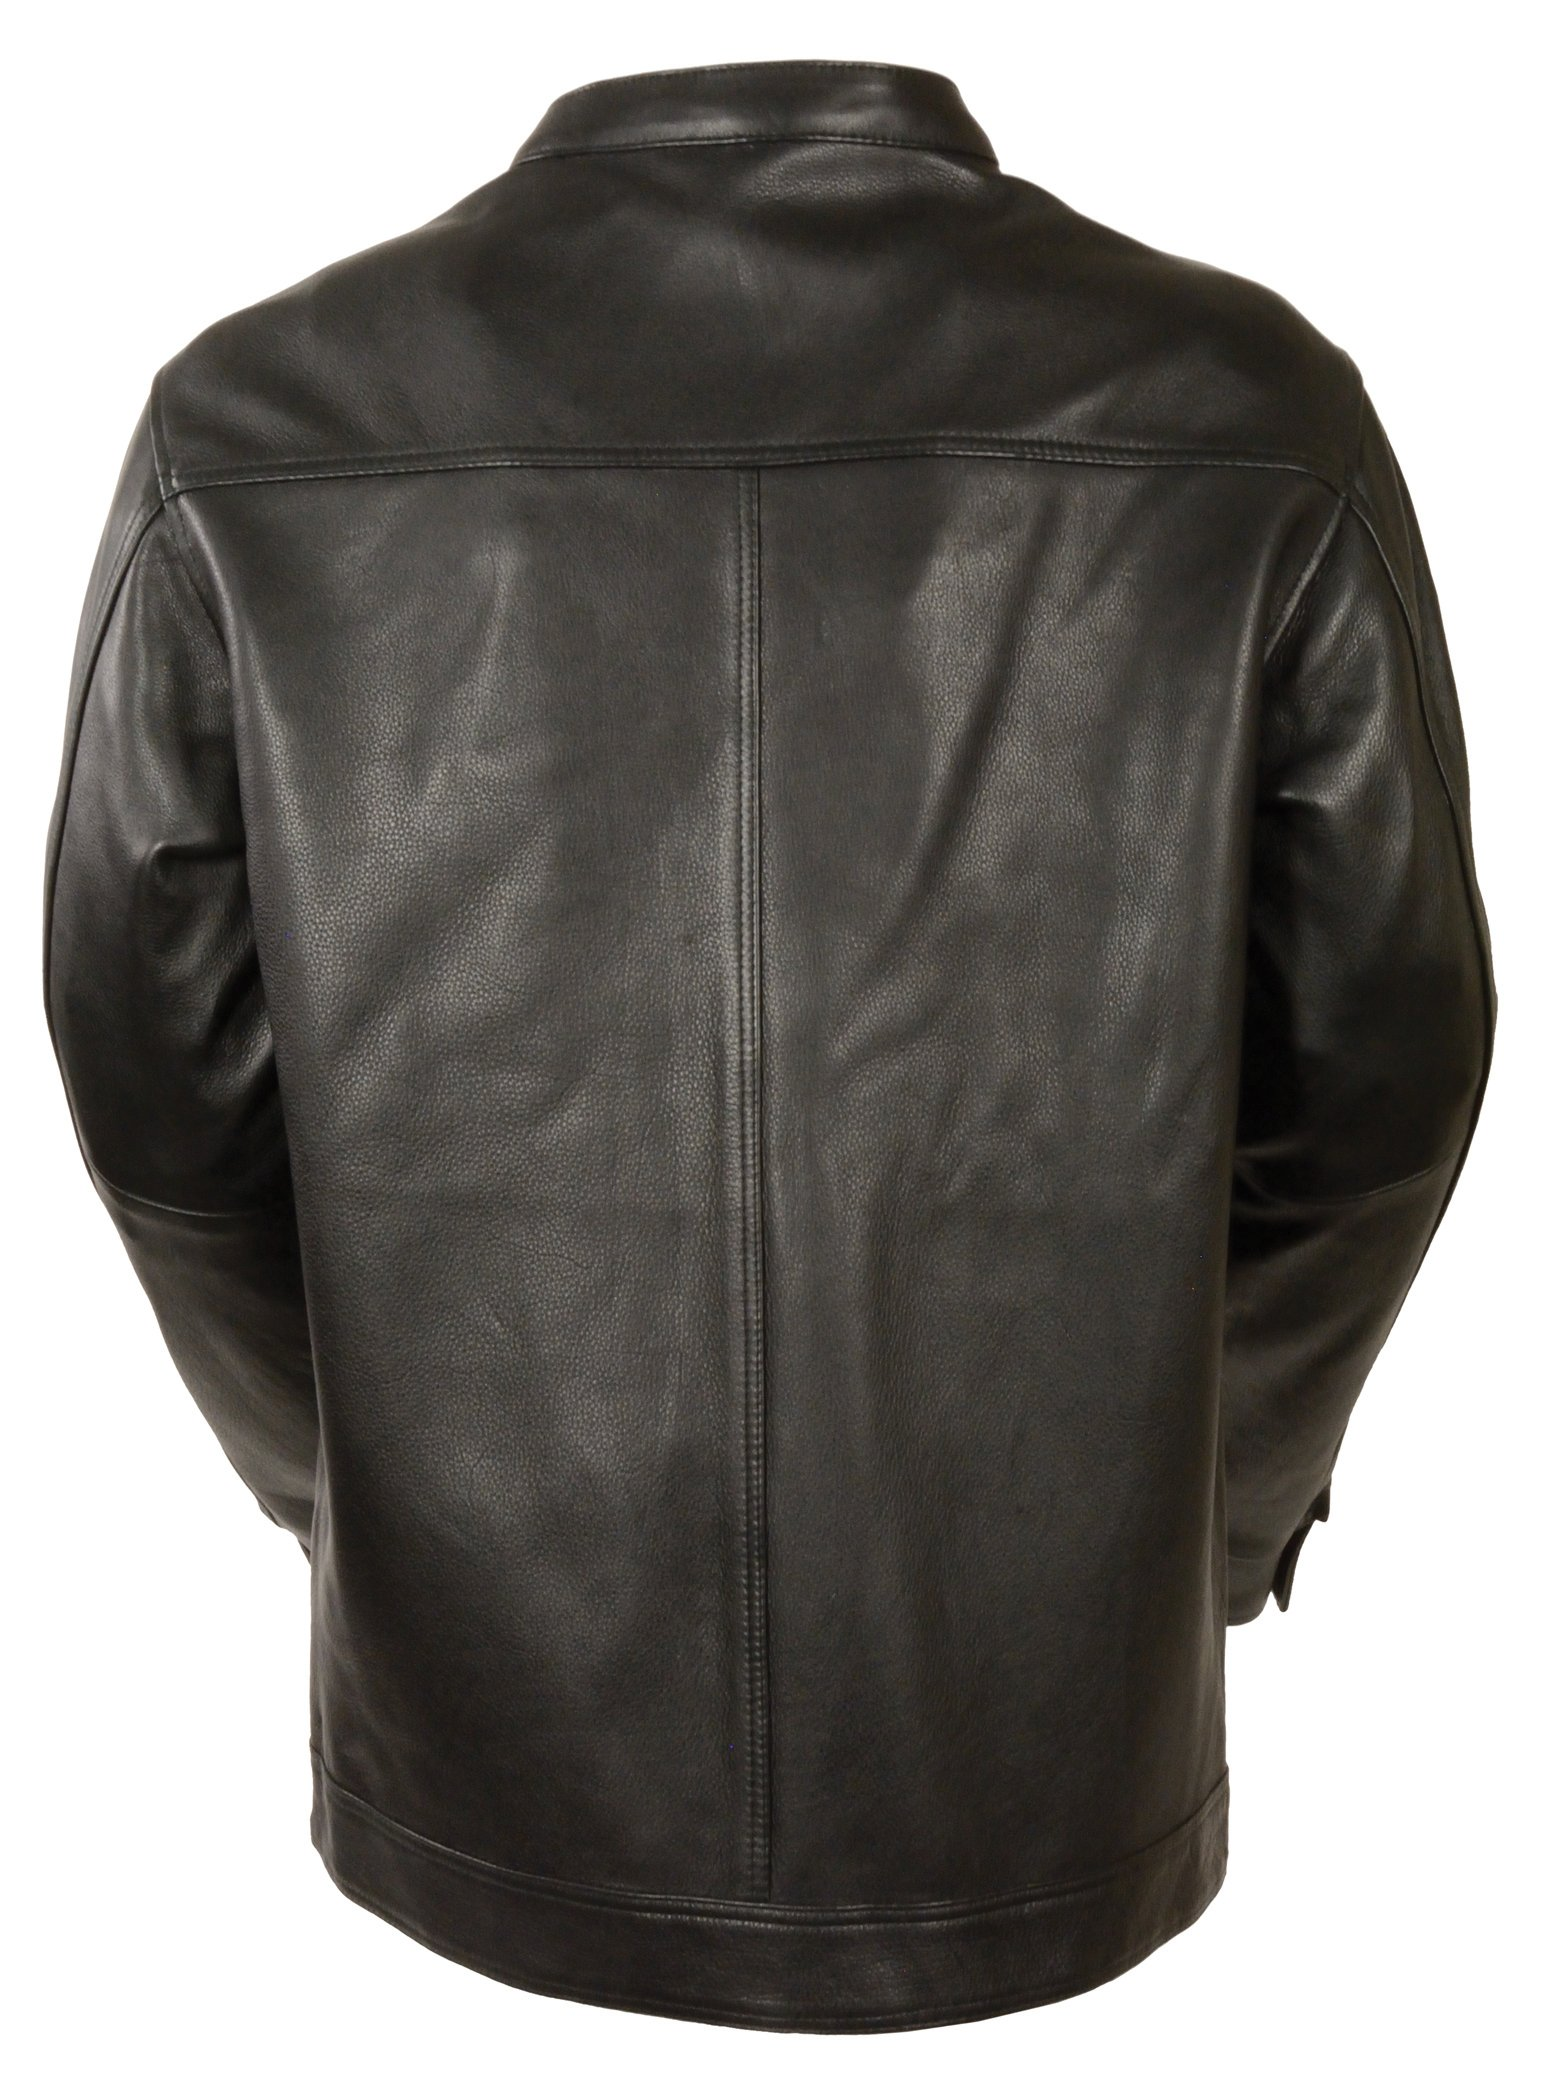 Milwaukee Men's SOA Shirt with Hidden Zip And Snaps (Black, Large) by Milwaukee (Image #2)